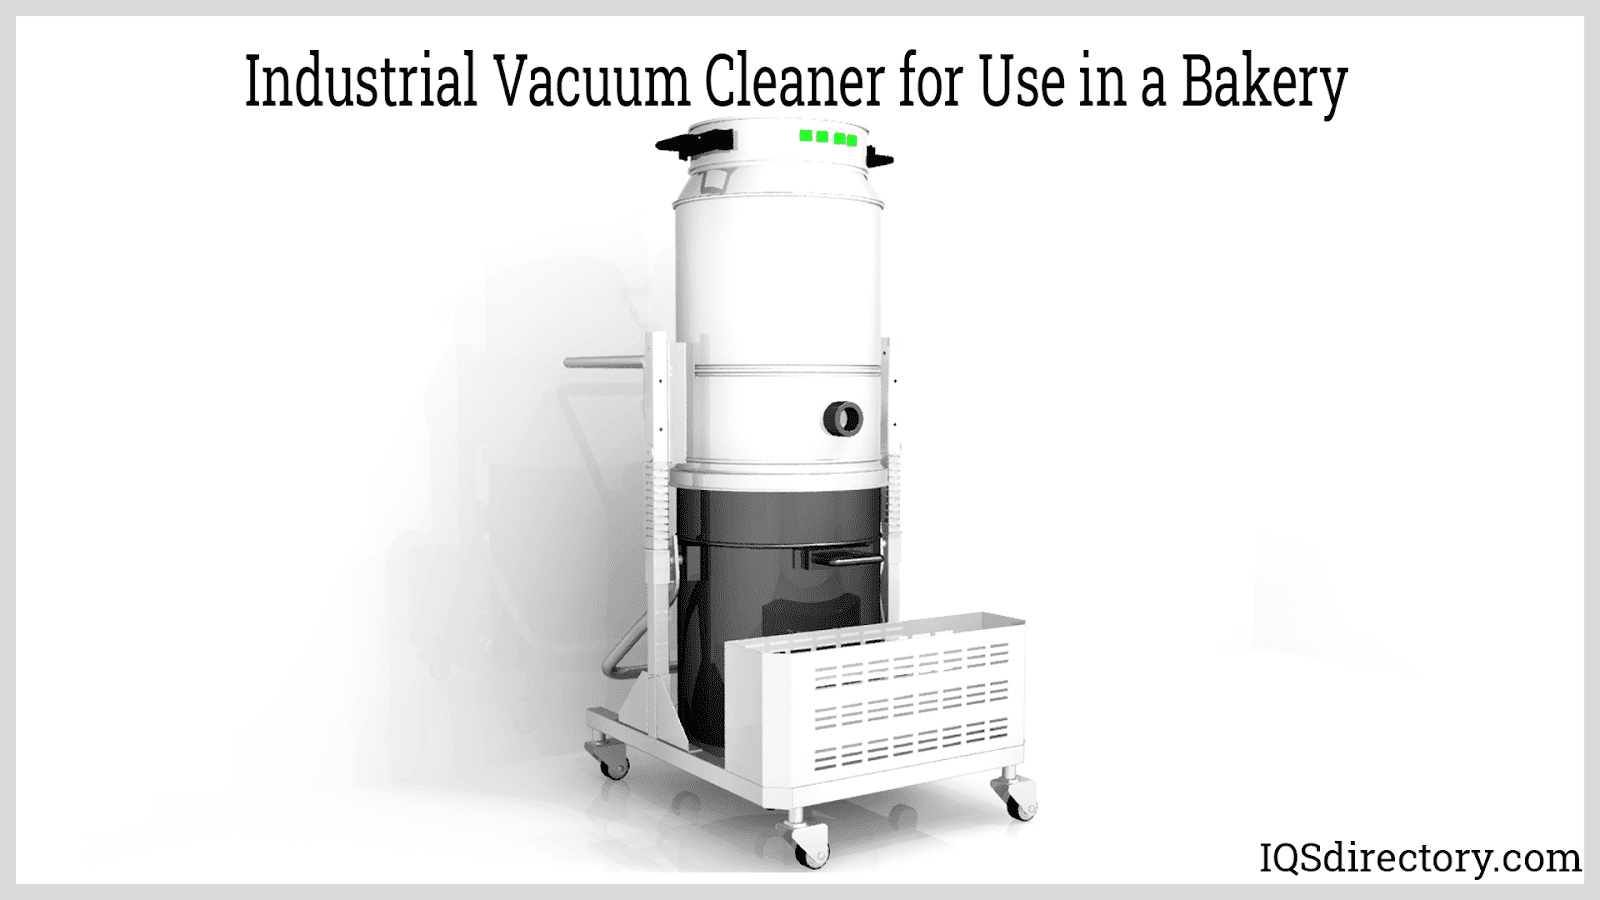 Industrial Vacuum Cleaner for Use in a Bakery